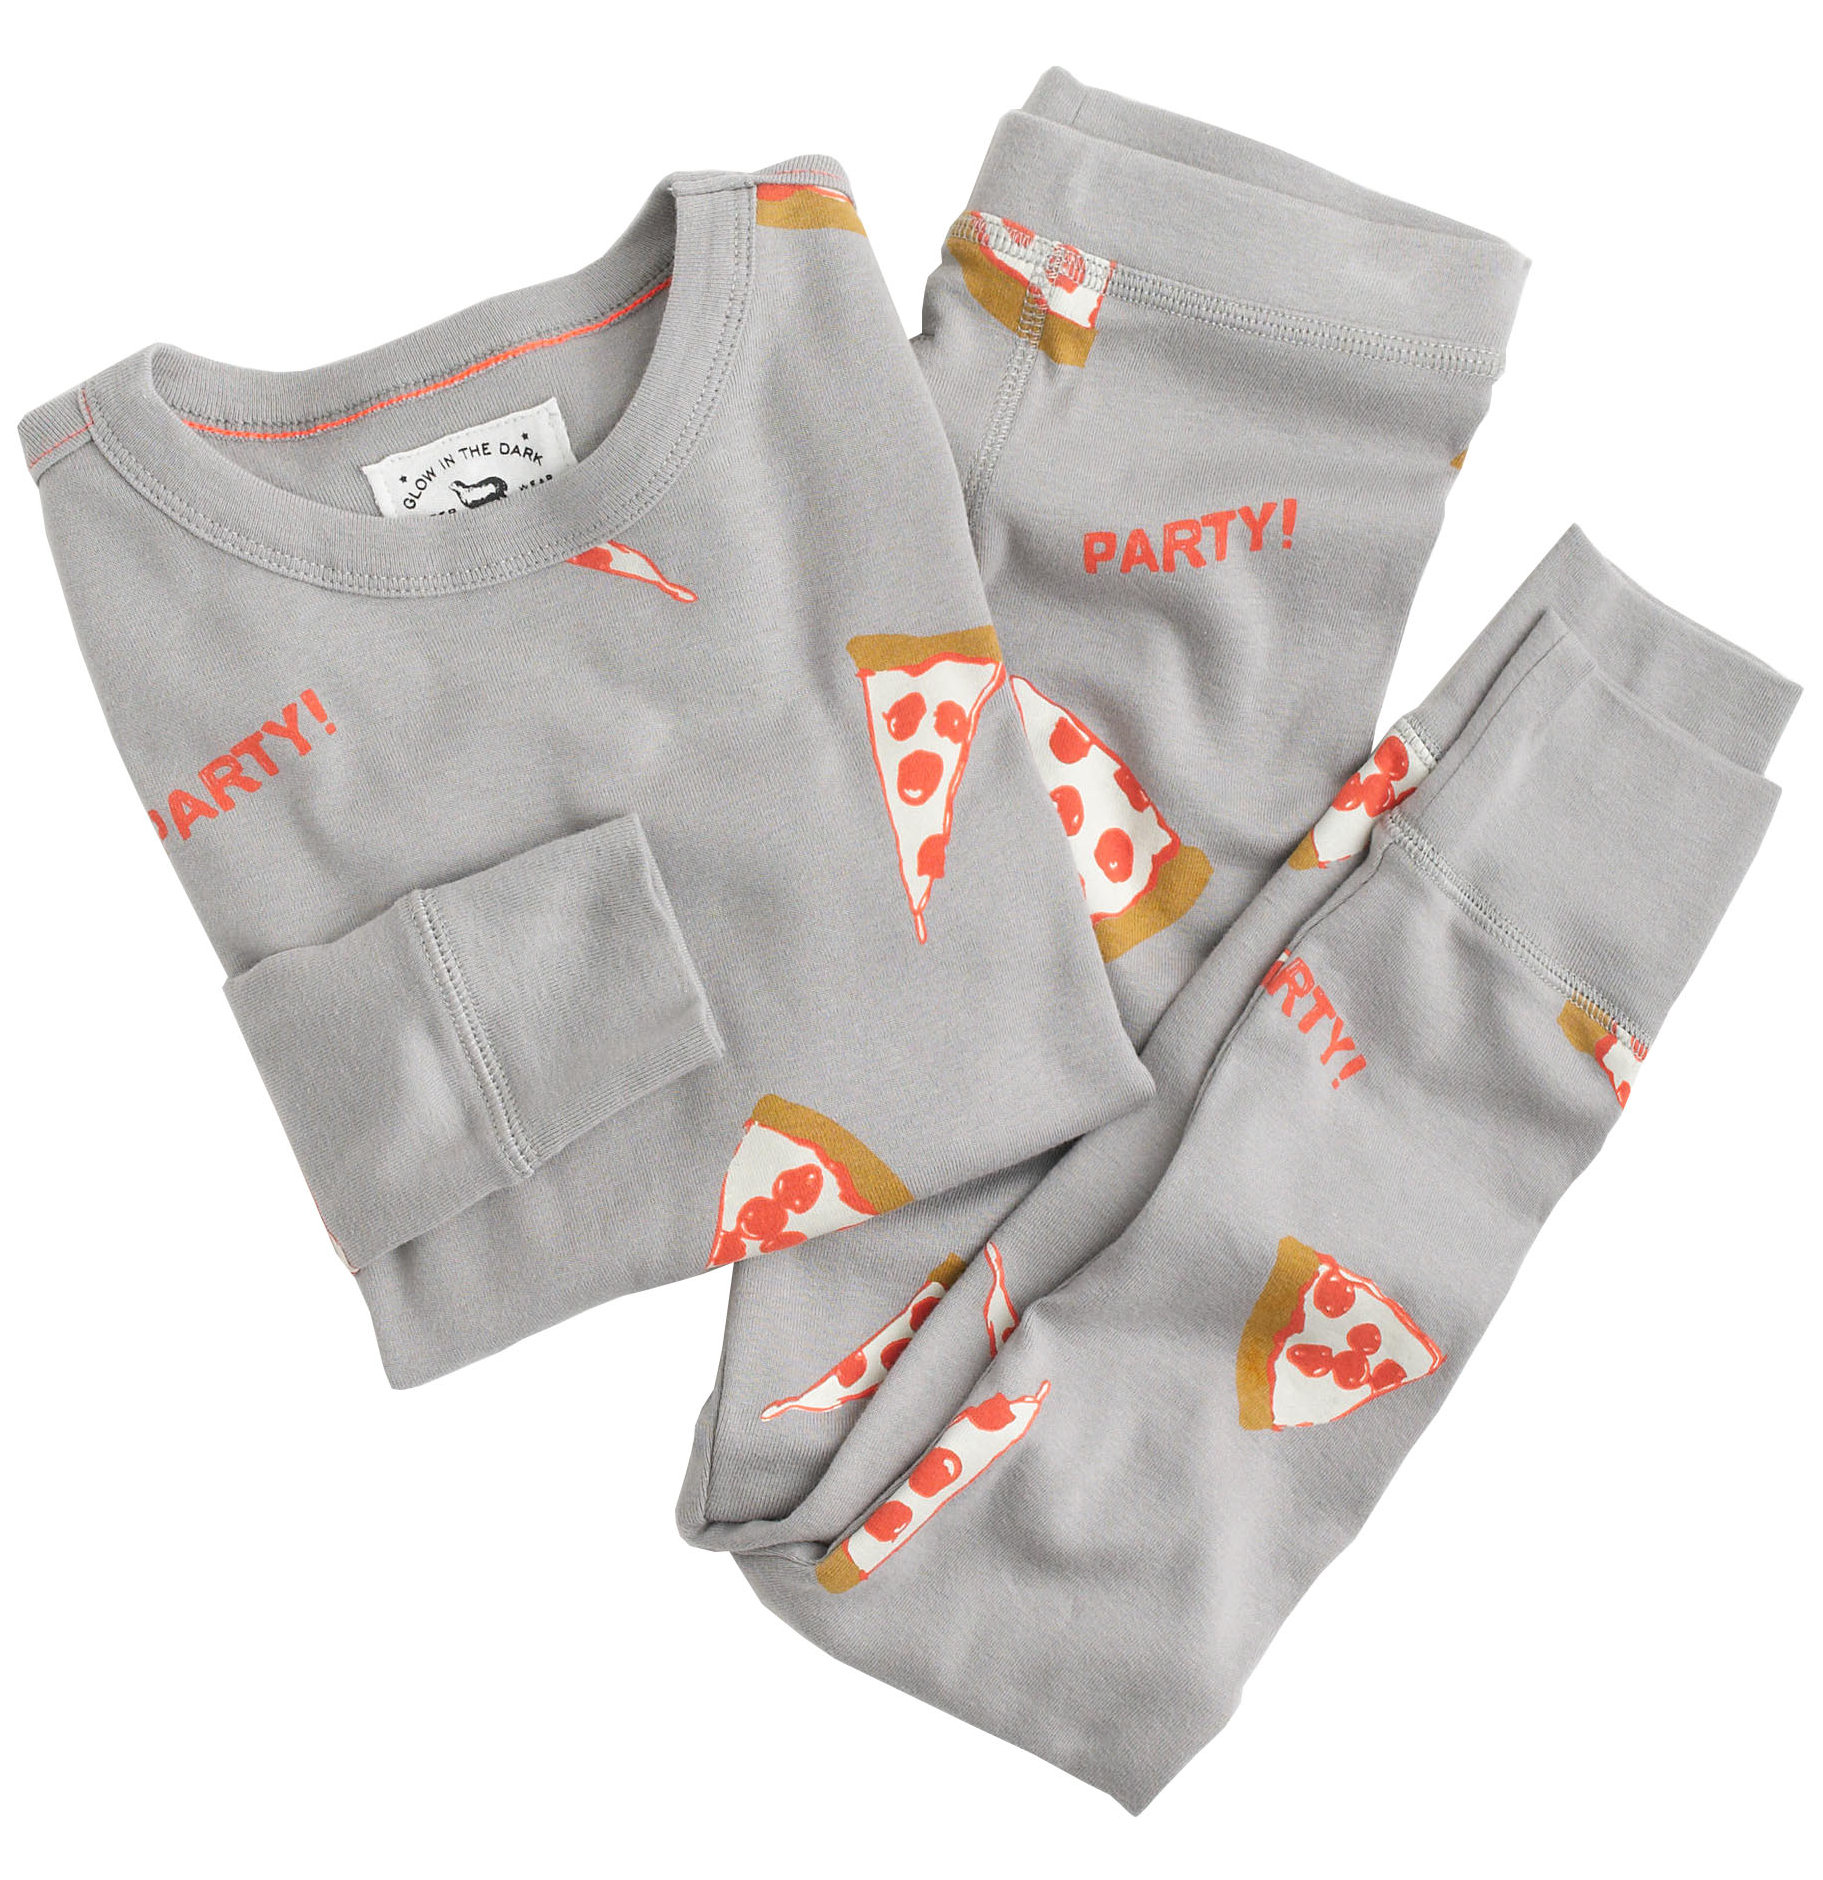 J.Crew Glow-in-the-Dark Pizza Party Pajamas 0de563ee6